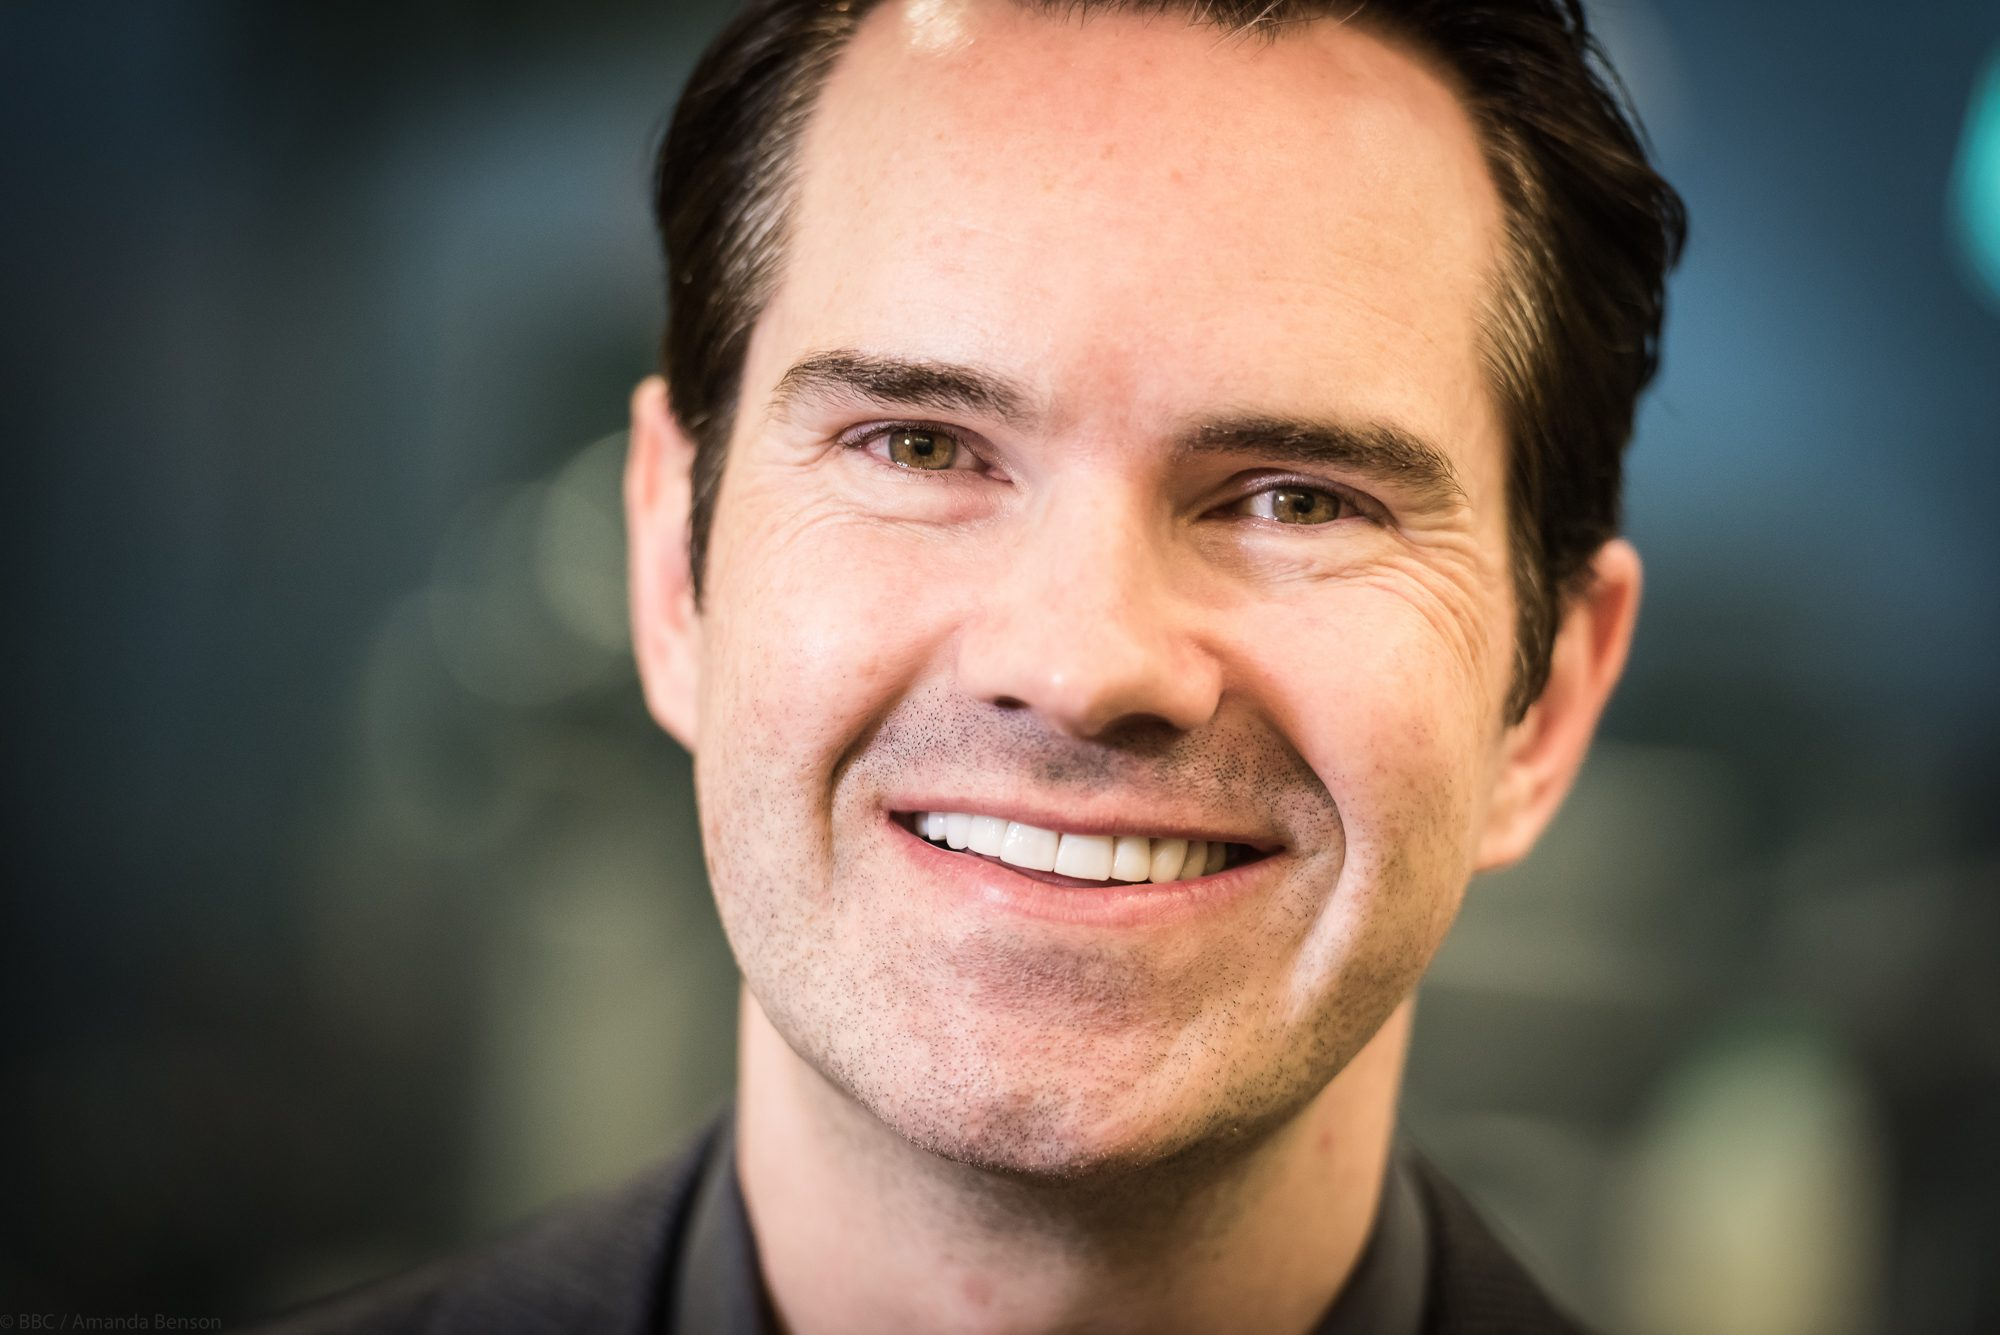 Jimmy carr worst gifts for christmas